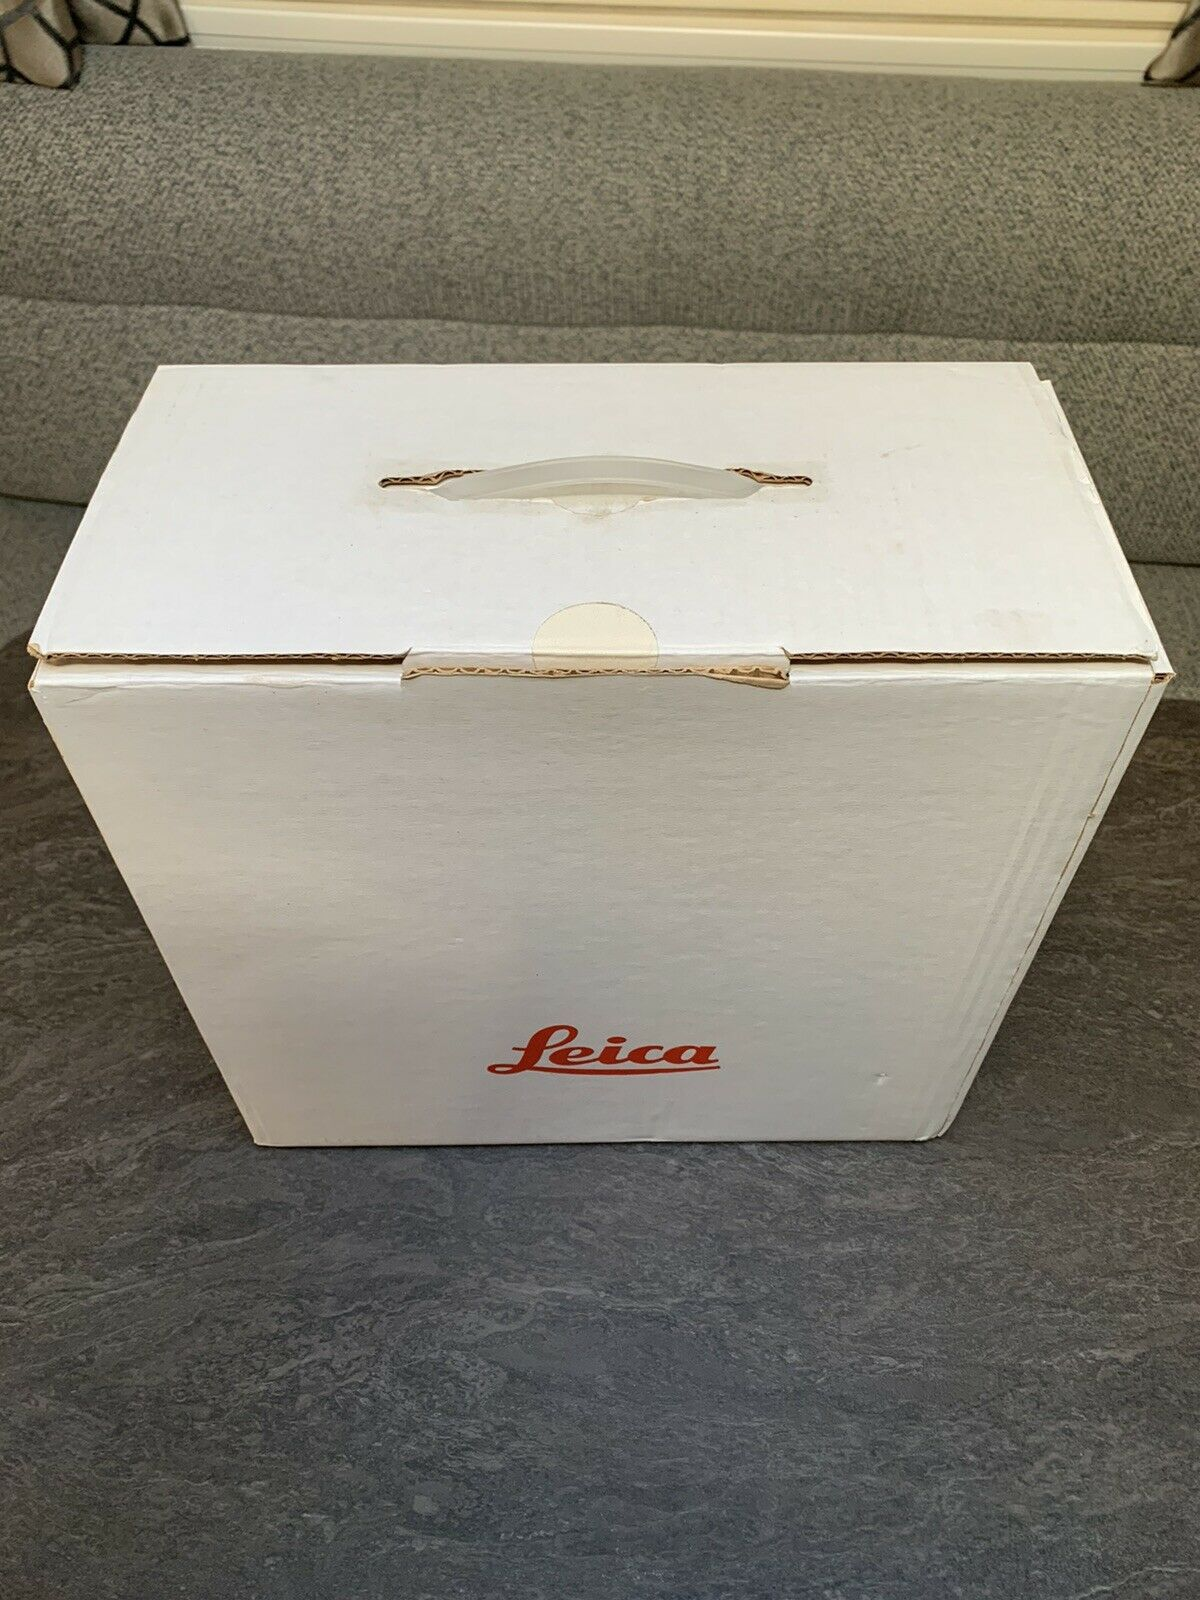 Leica P150 Slide Projector Boxed With Instructions - Full Working Order